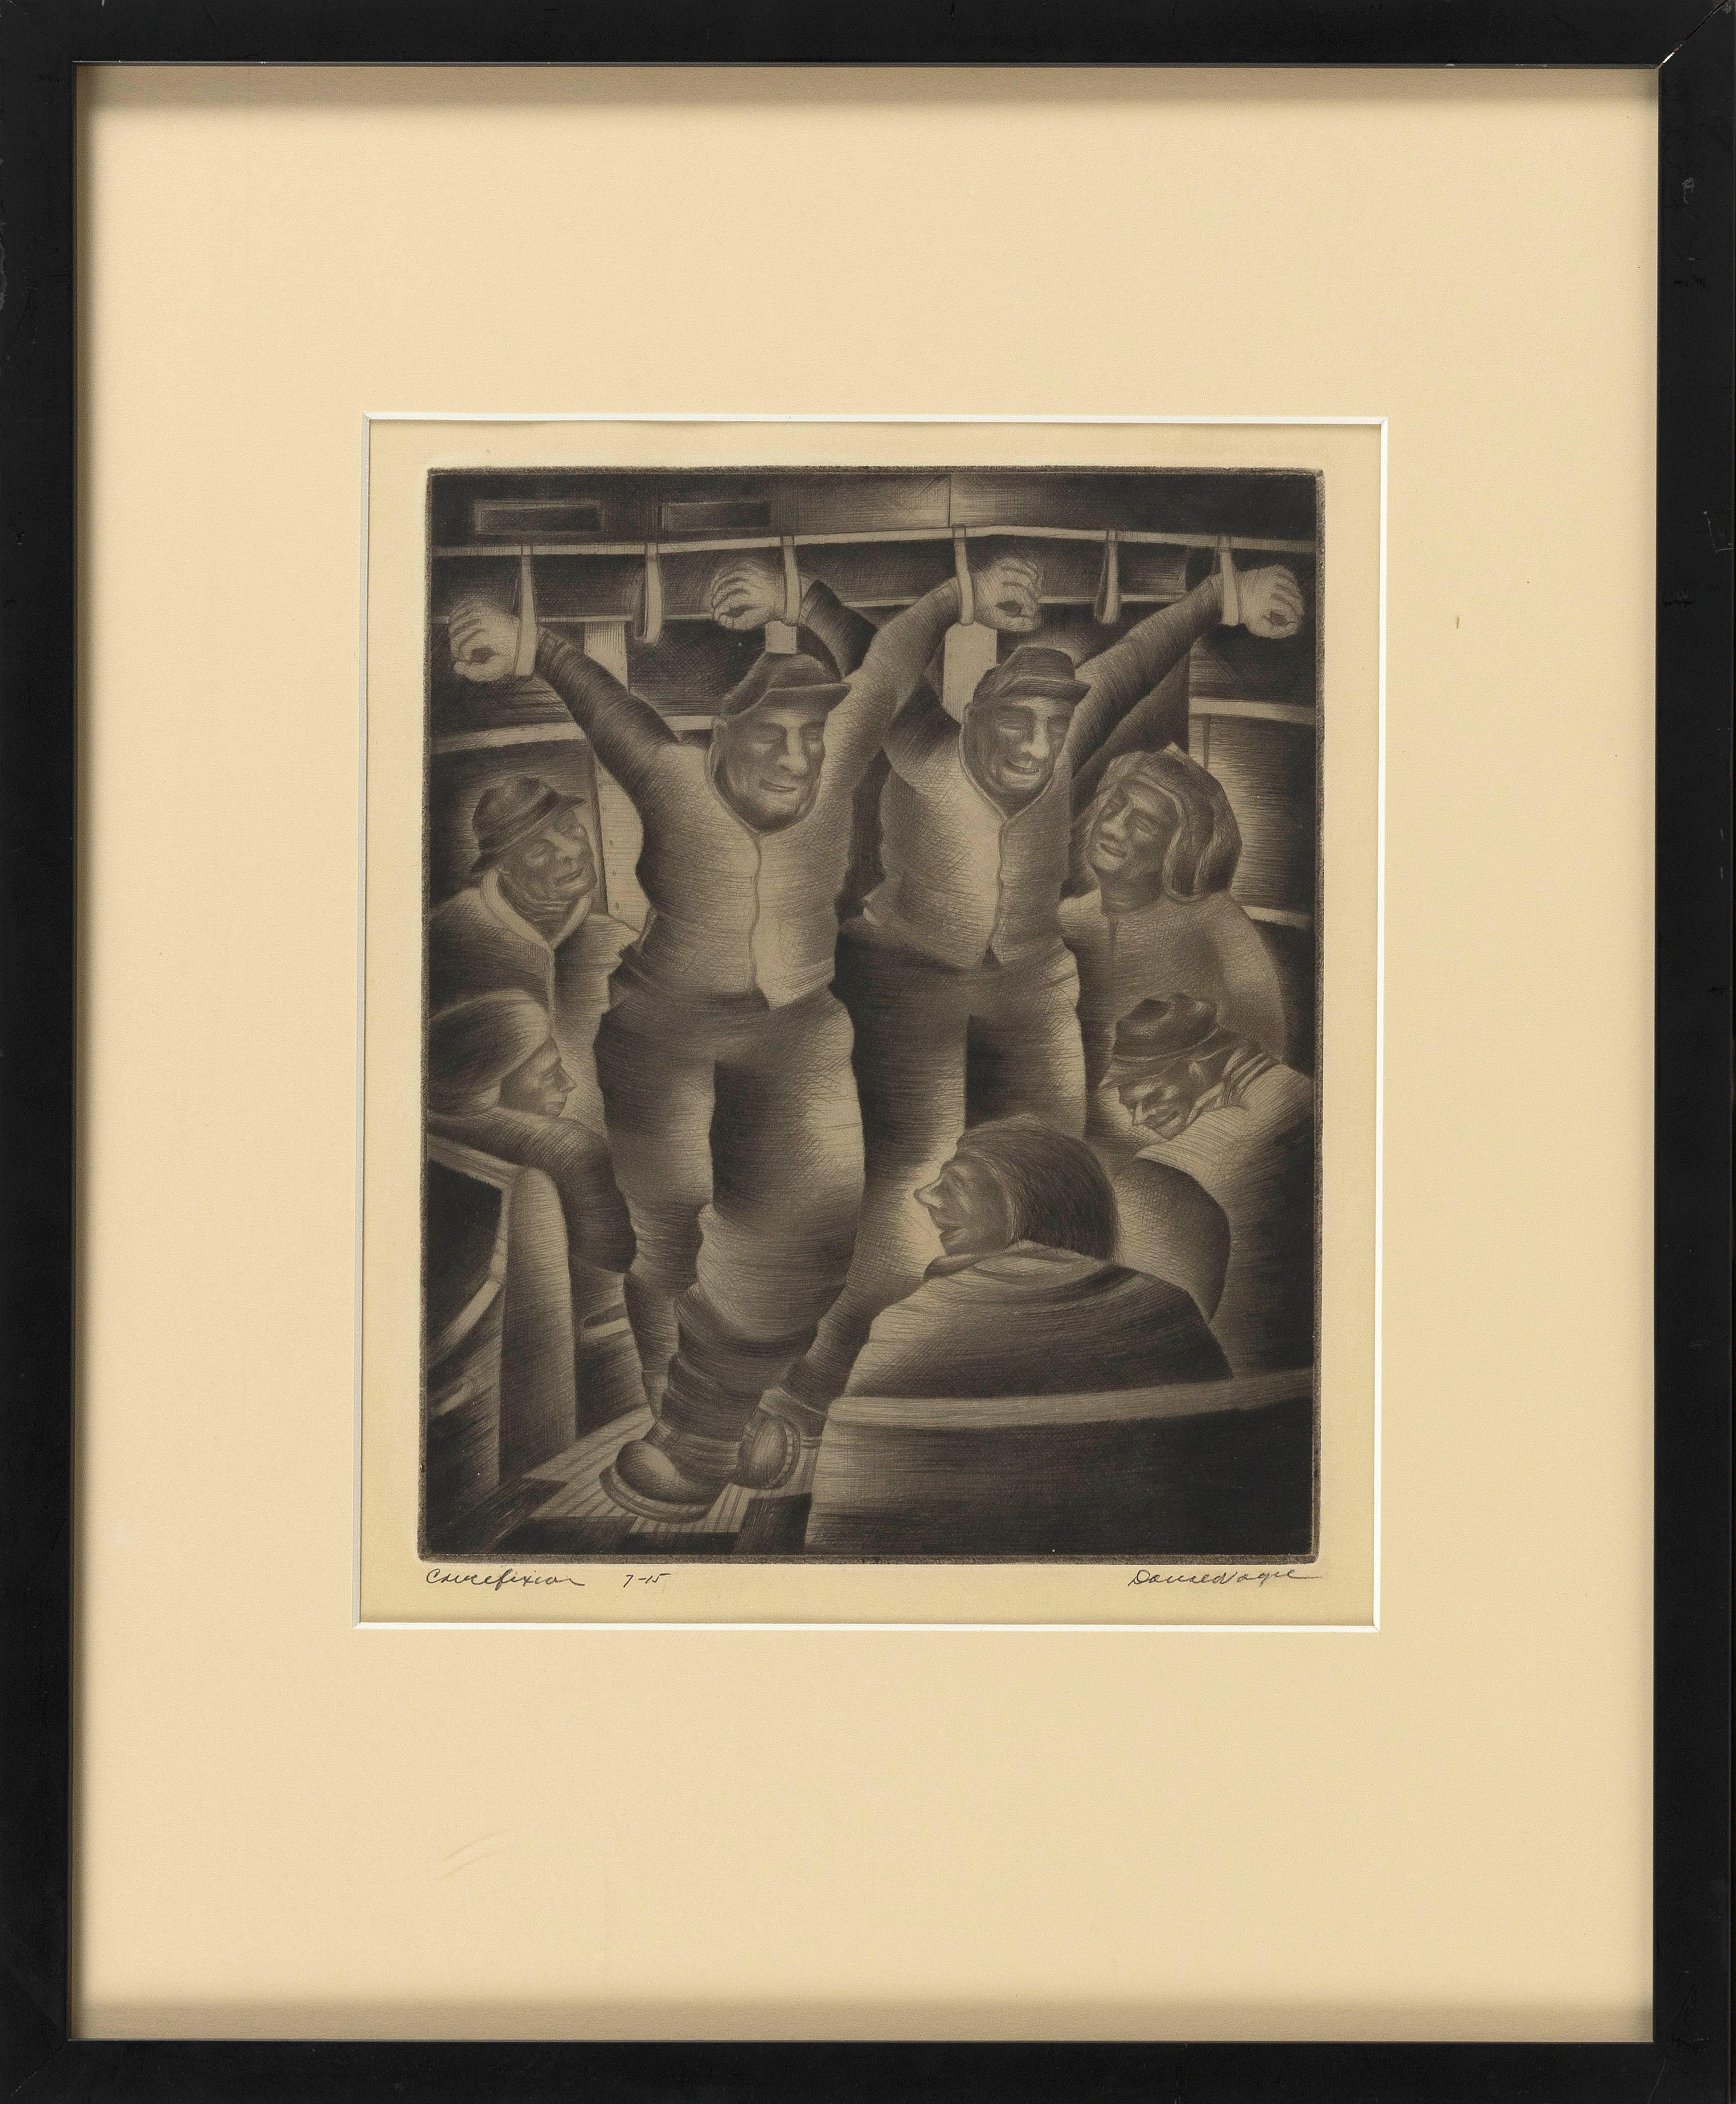 """DONALD VOGEL (New York/Poland, 1902-), """"Crucifixion""""., Dry point etching, 11"""" x 8.75"""" to the plate line. Framed 21.25"""" x 17.25"""". Paper size 14.25"""" x 11.125""""."""